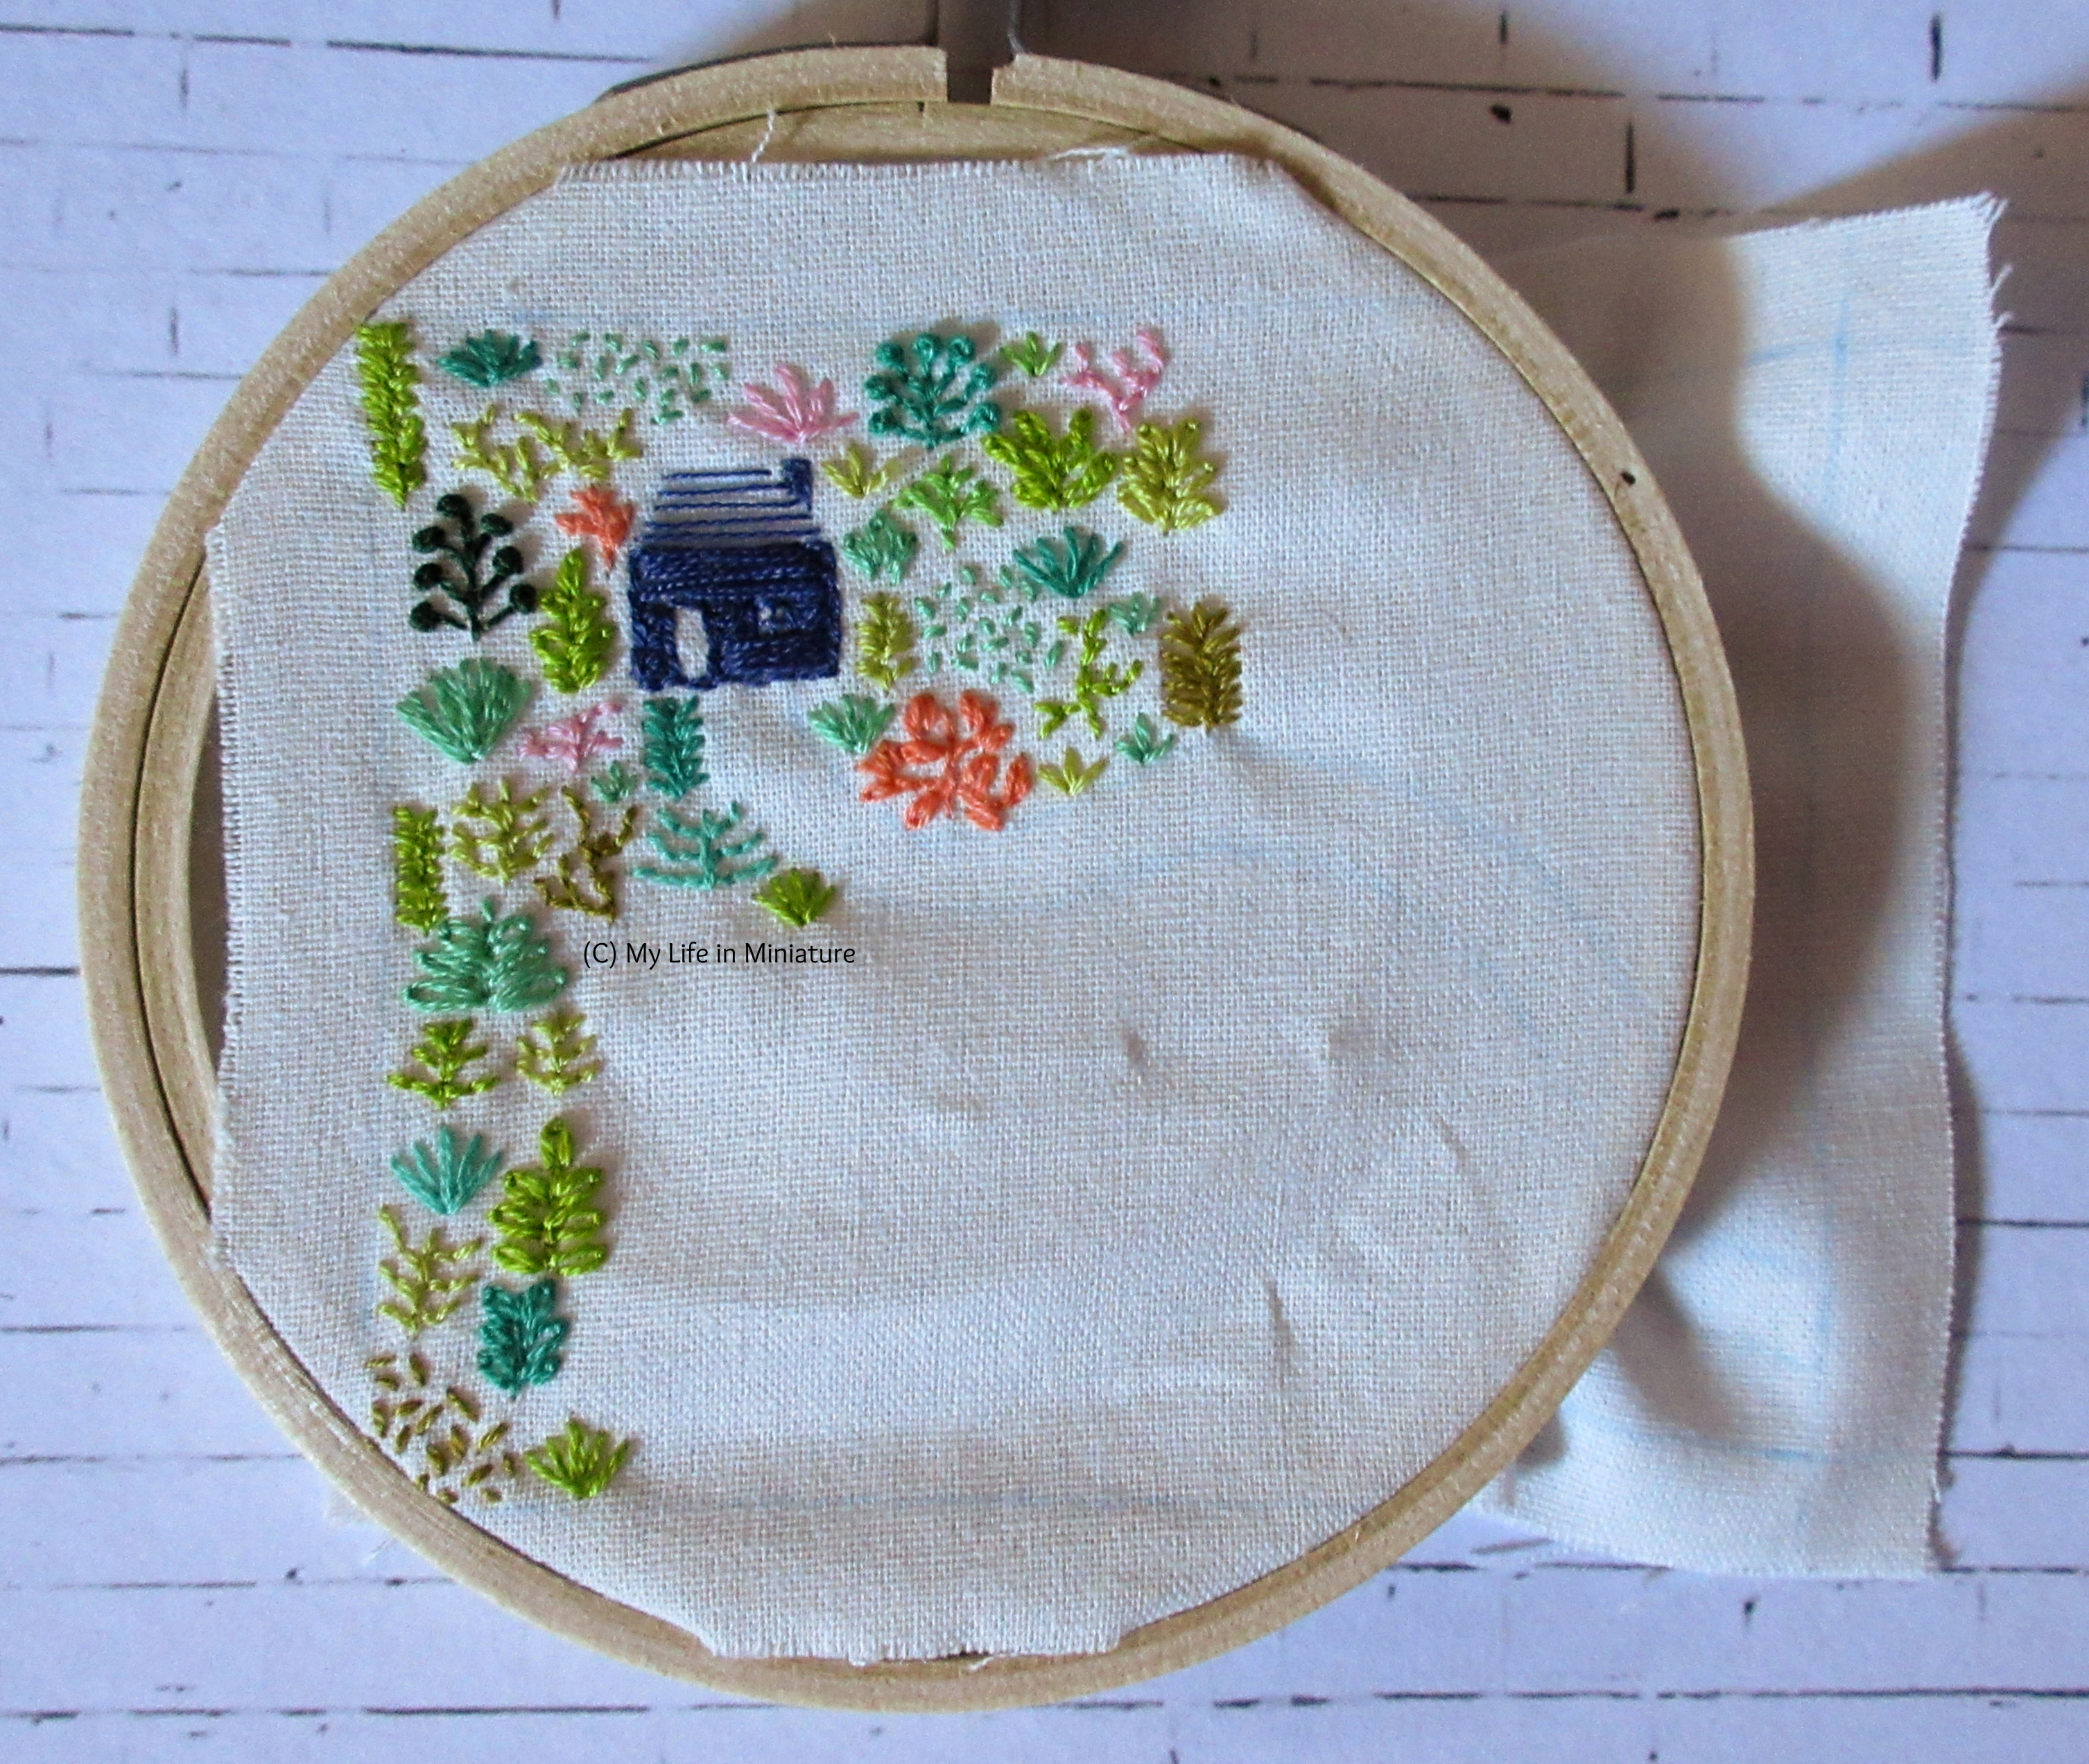 White fabric is in an embroidery hoop. Stitched on it is a small navy blue house, and an assortment of plants in different colours. All the stitching is towards the left-hand-side of the fabric. A white path is starting to emerge, curving from the front of the house.